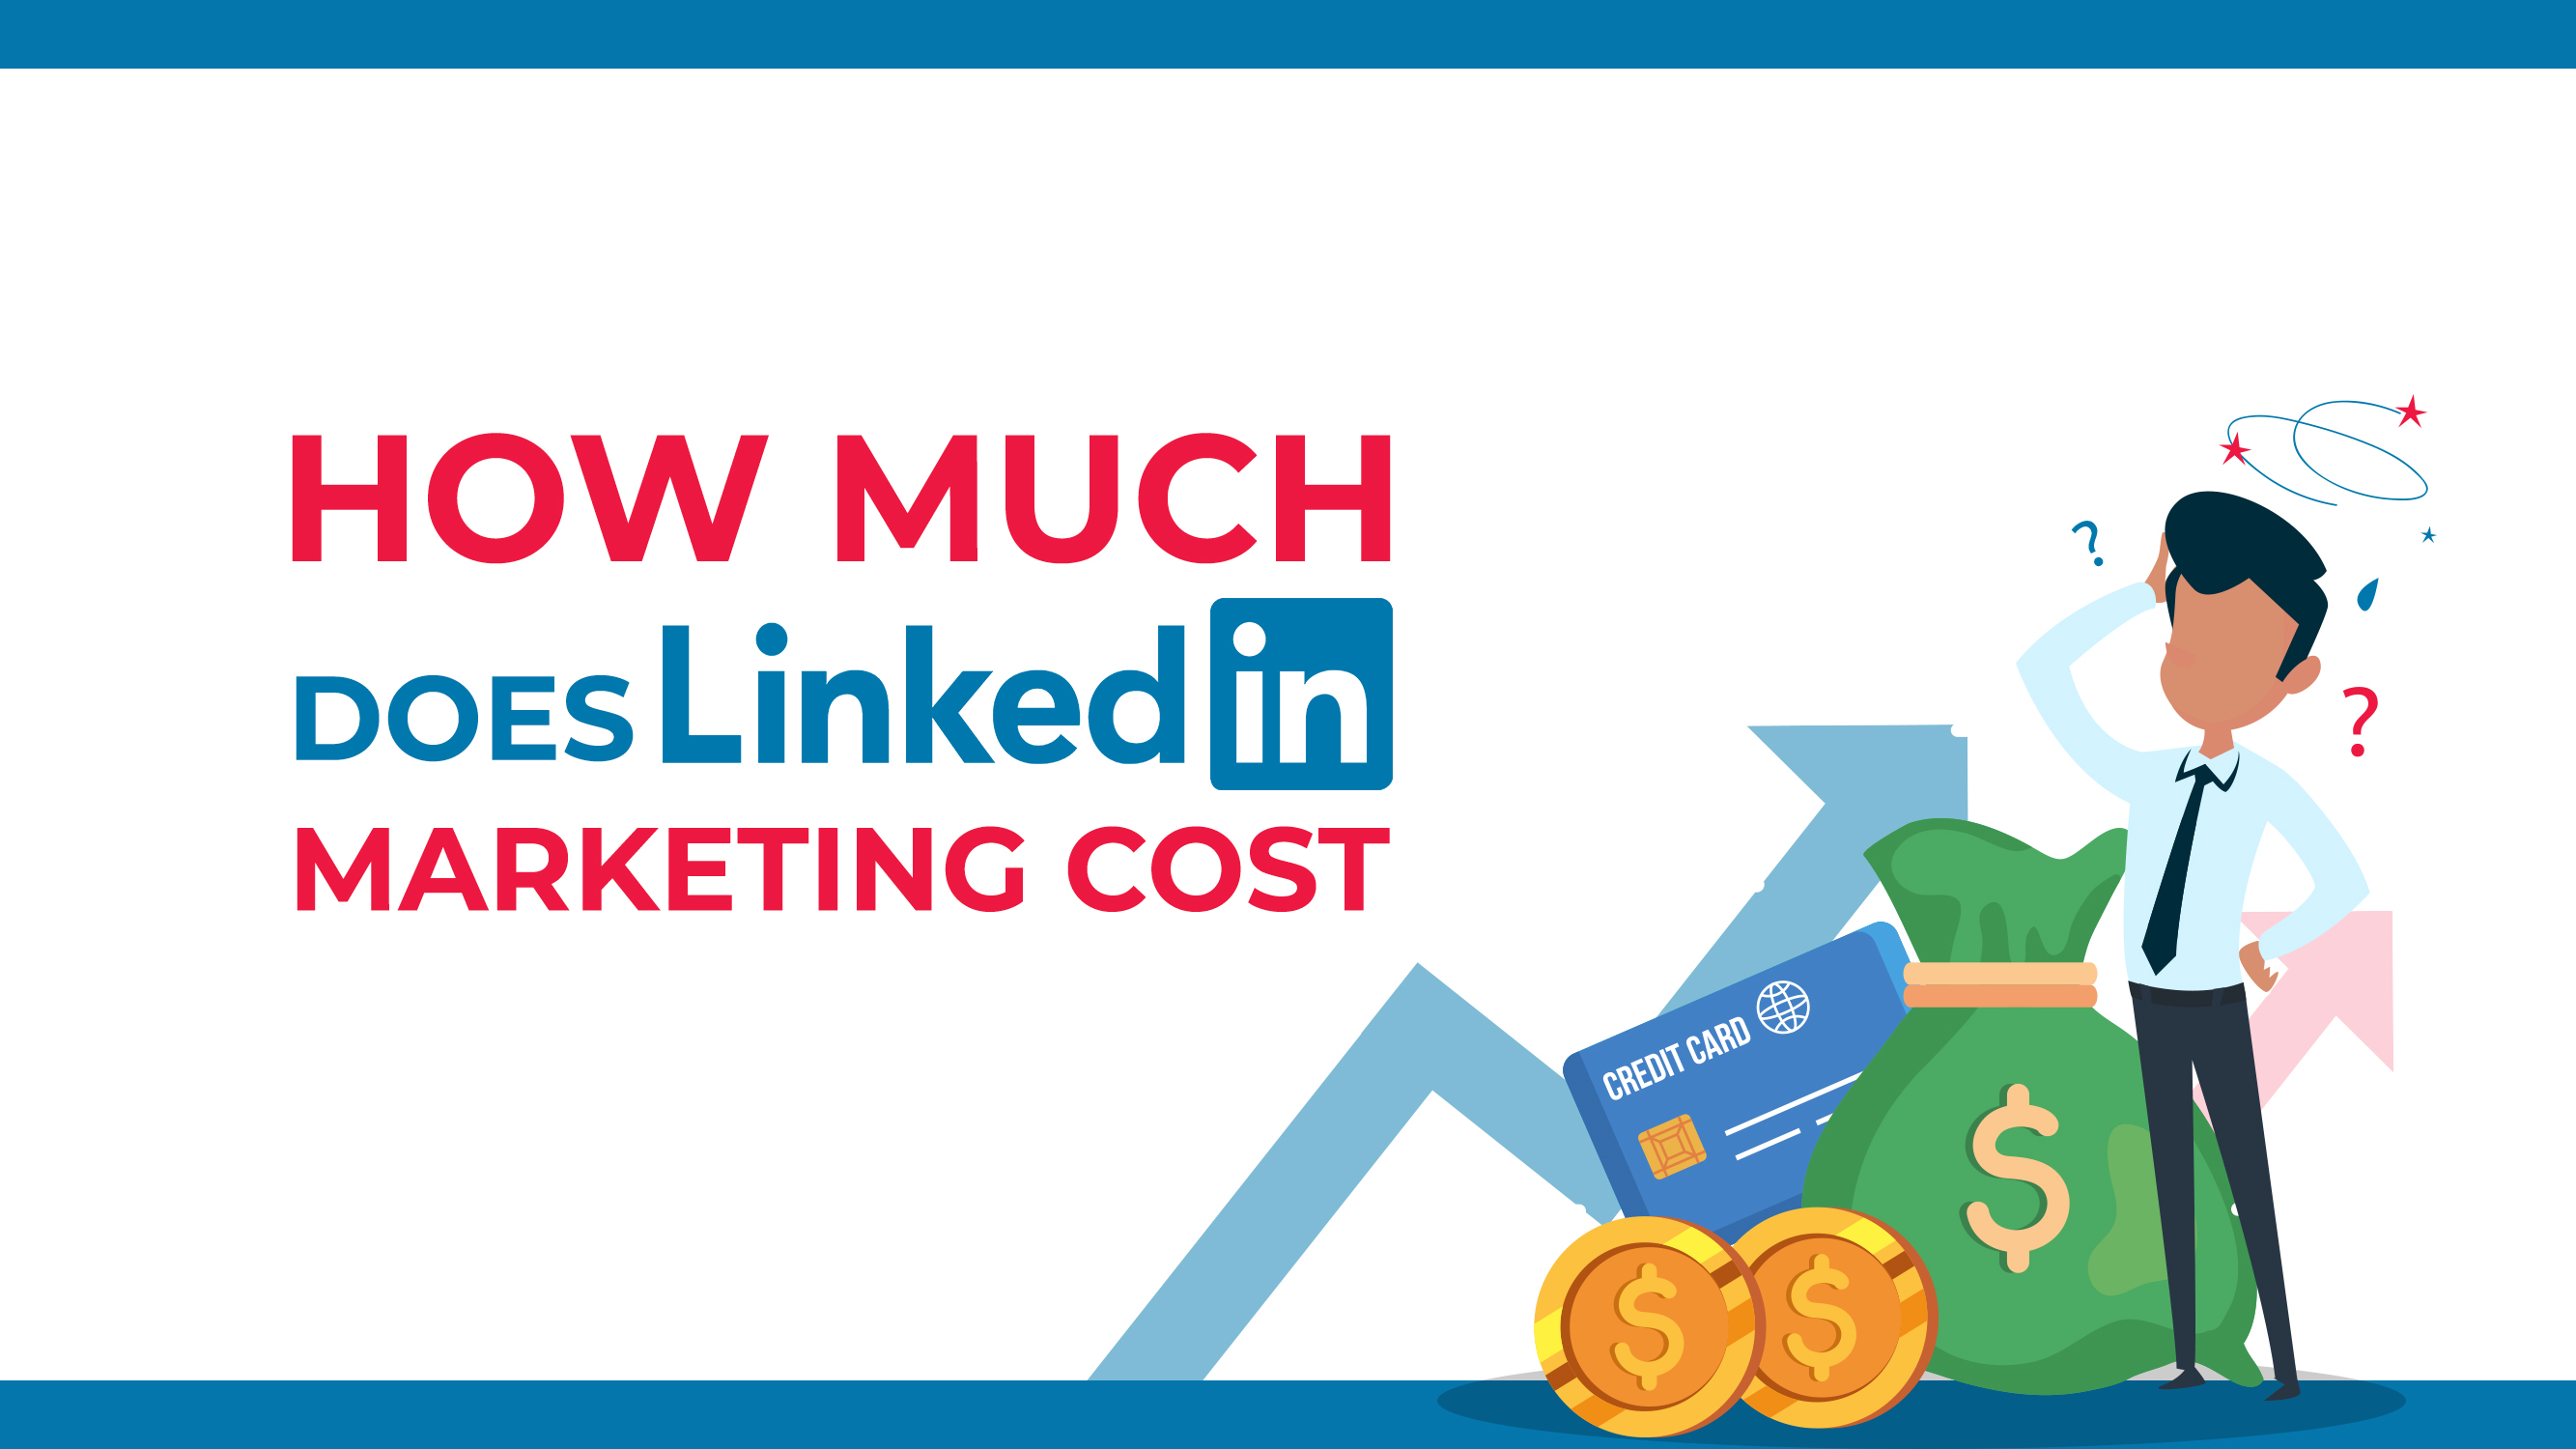 How Much Does LinkedIn Marketing Cost?